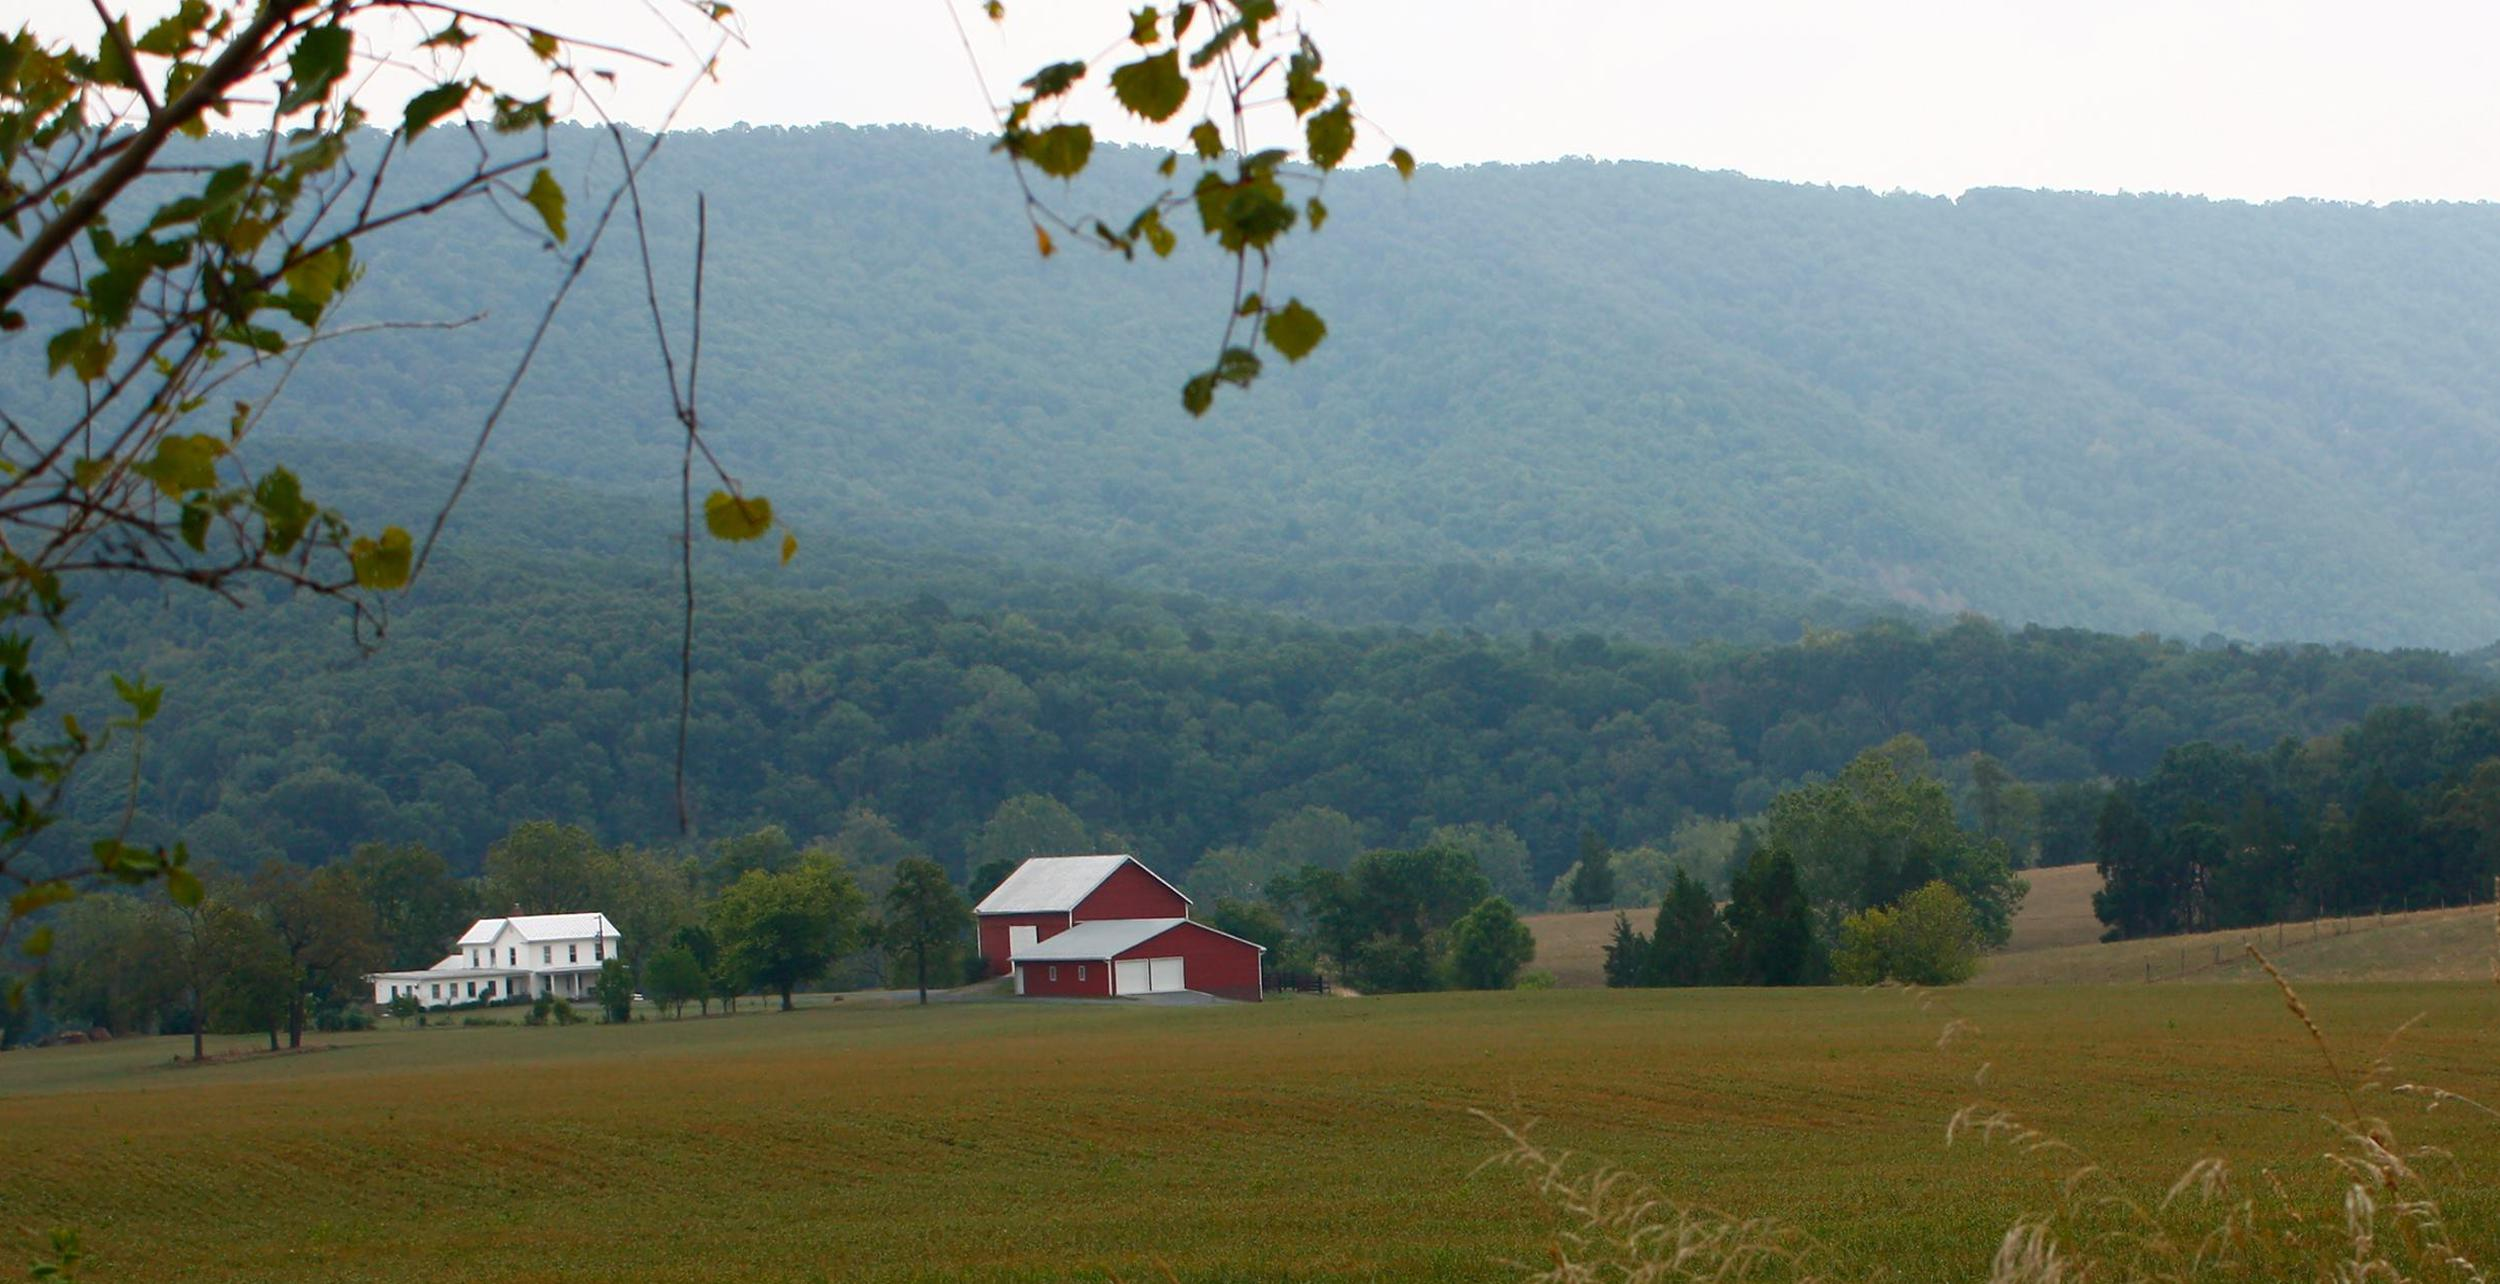 Shenandoah Valley Farm by the mountains